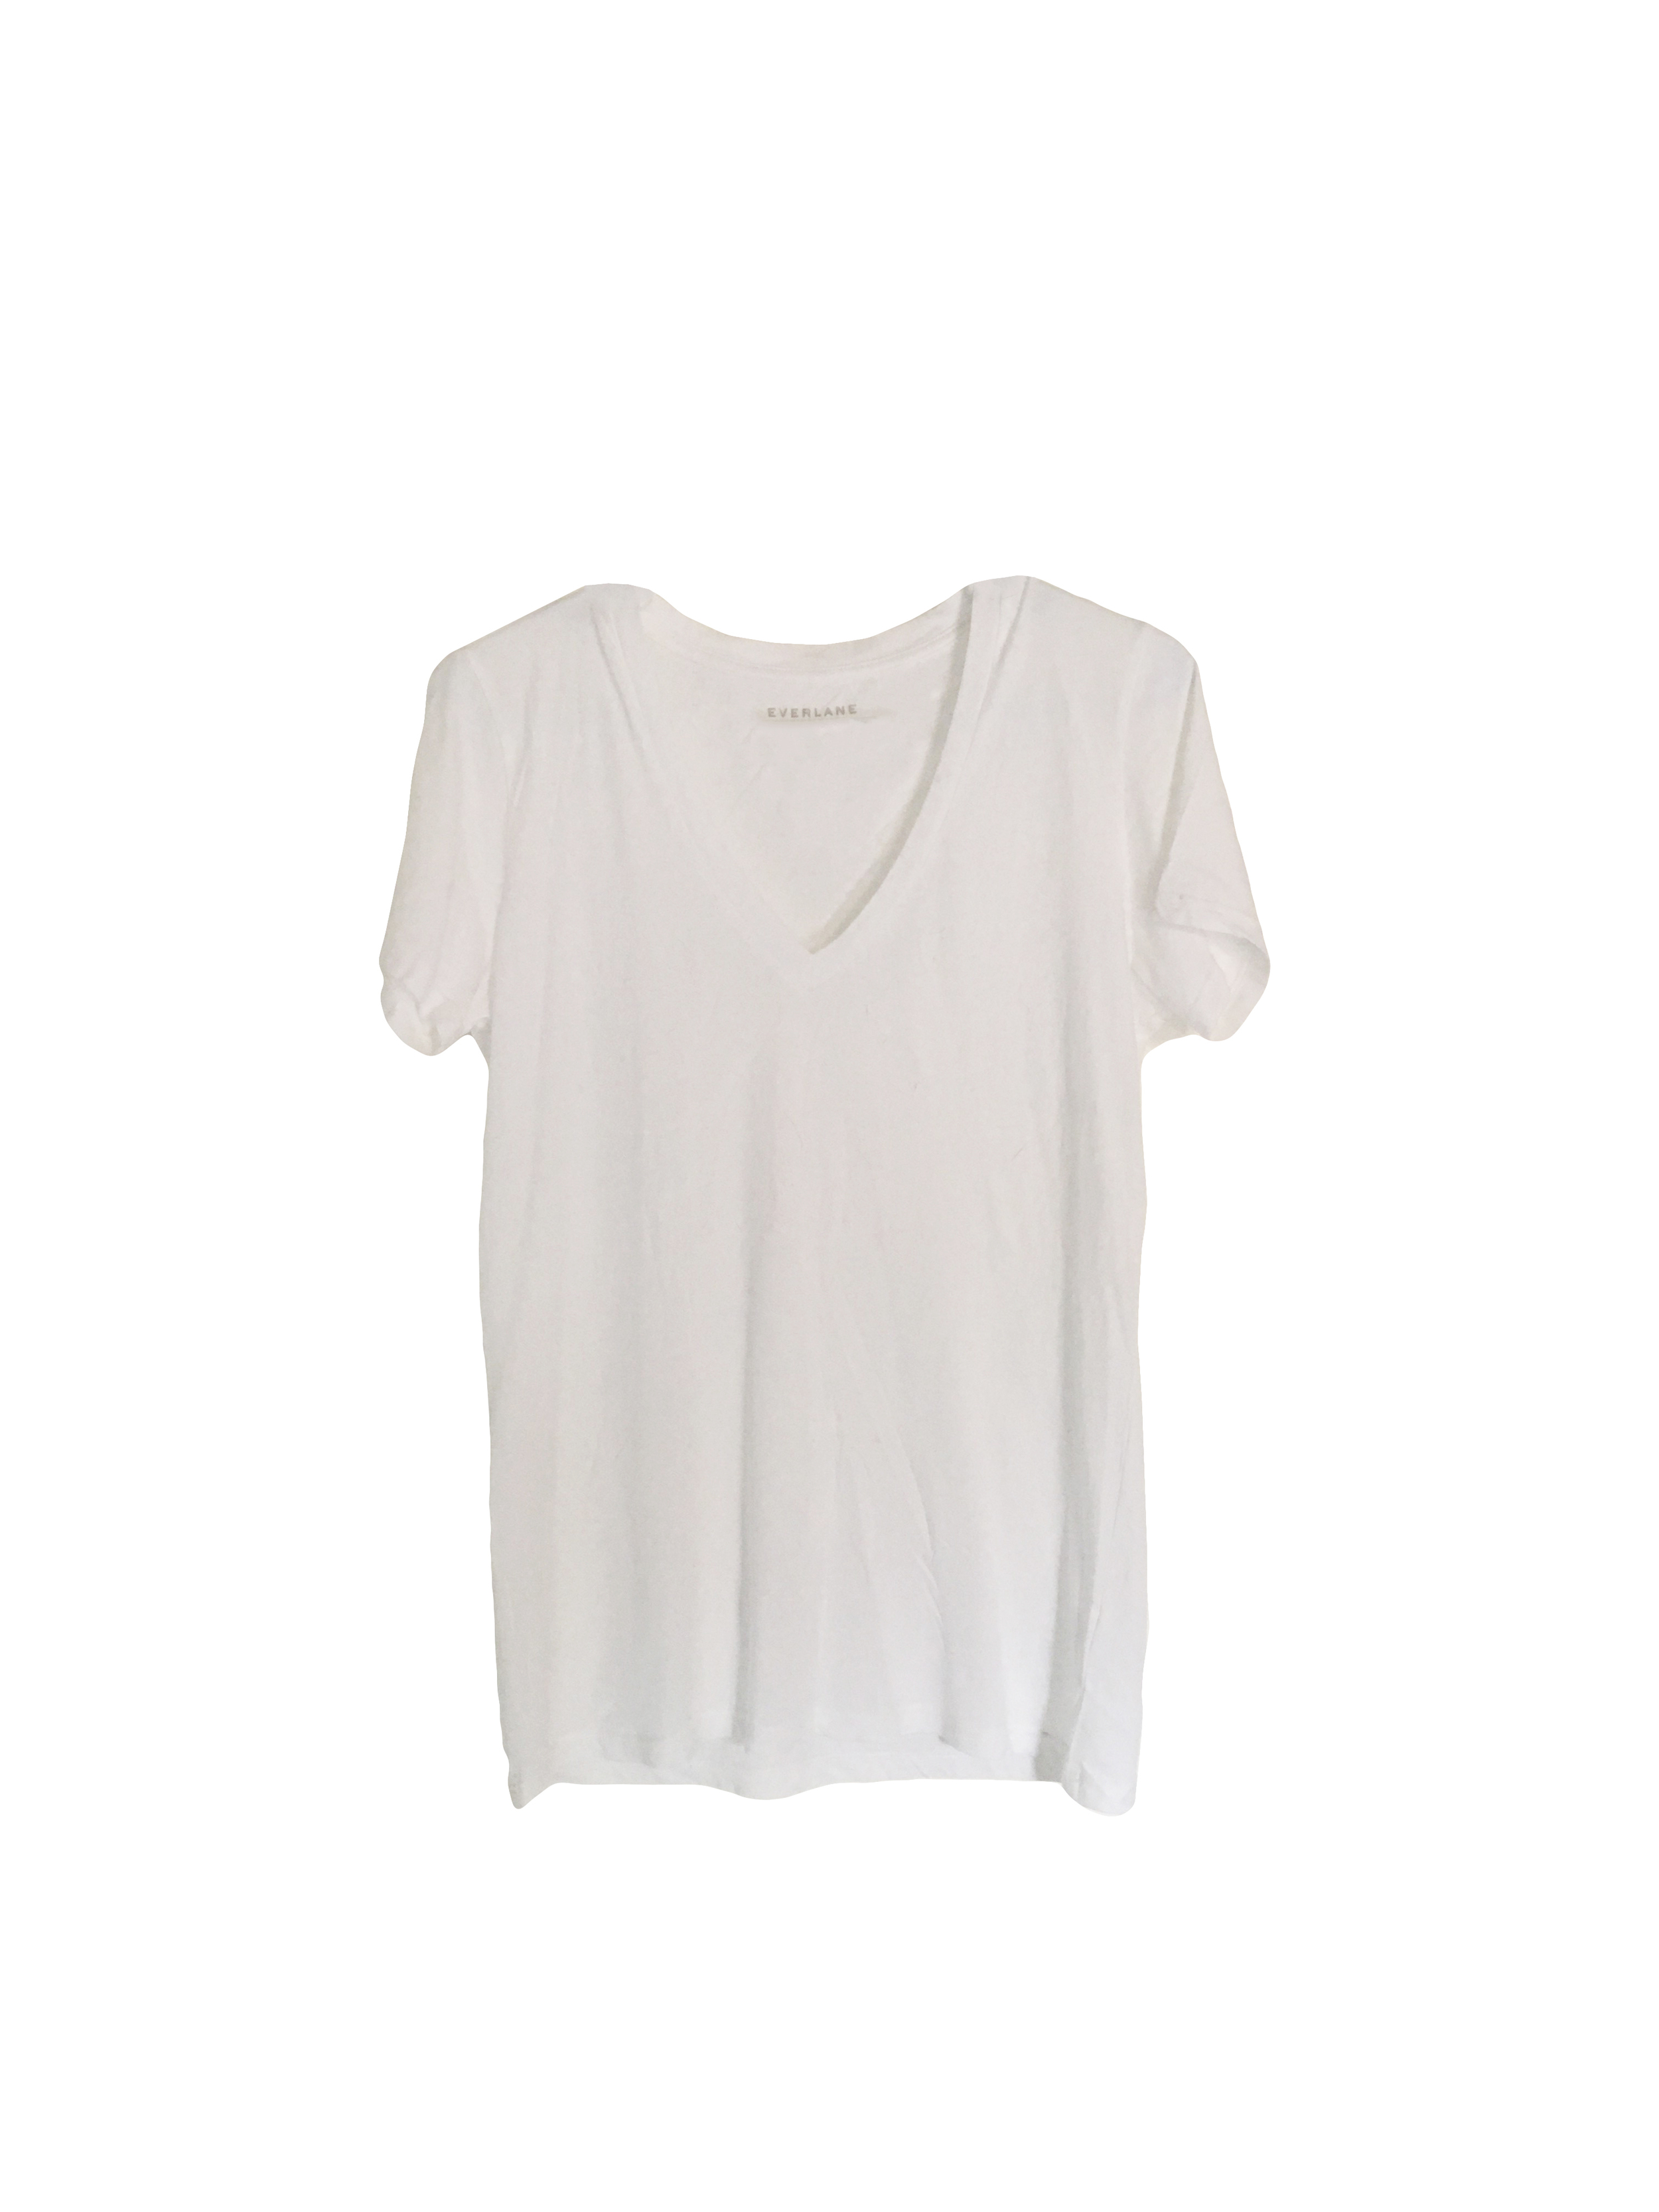 Everlane White Cotton Tee | A Capsule Wardrobe Basic and Staple at Cat On The Moon | A thoughtful style blog for a simple life.